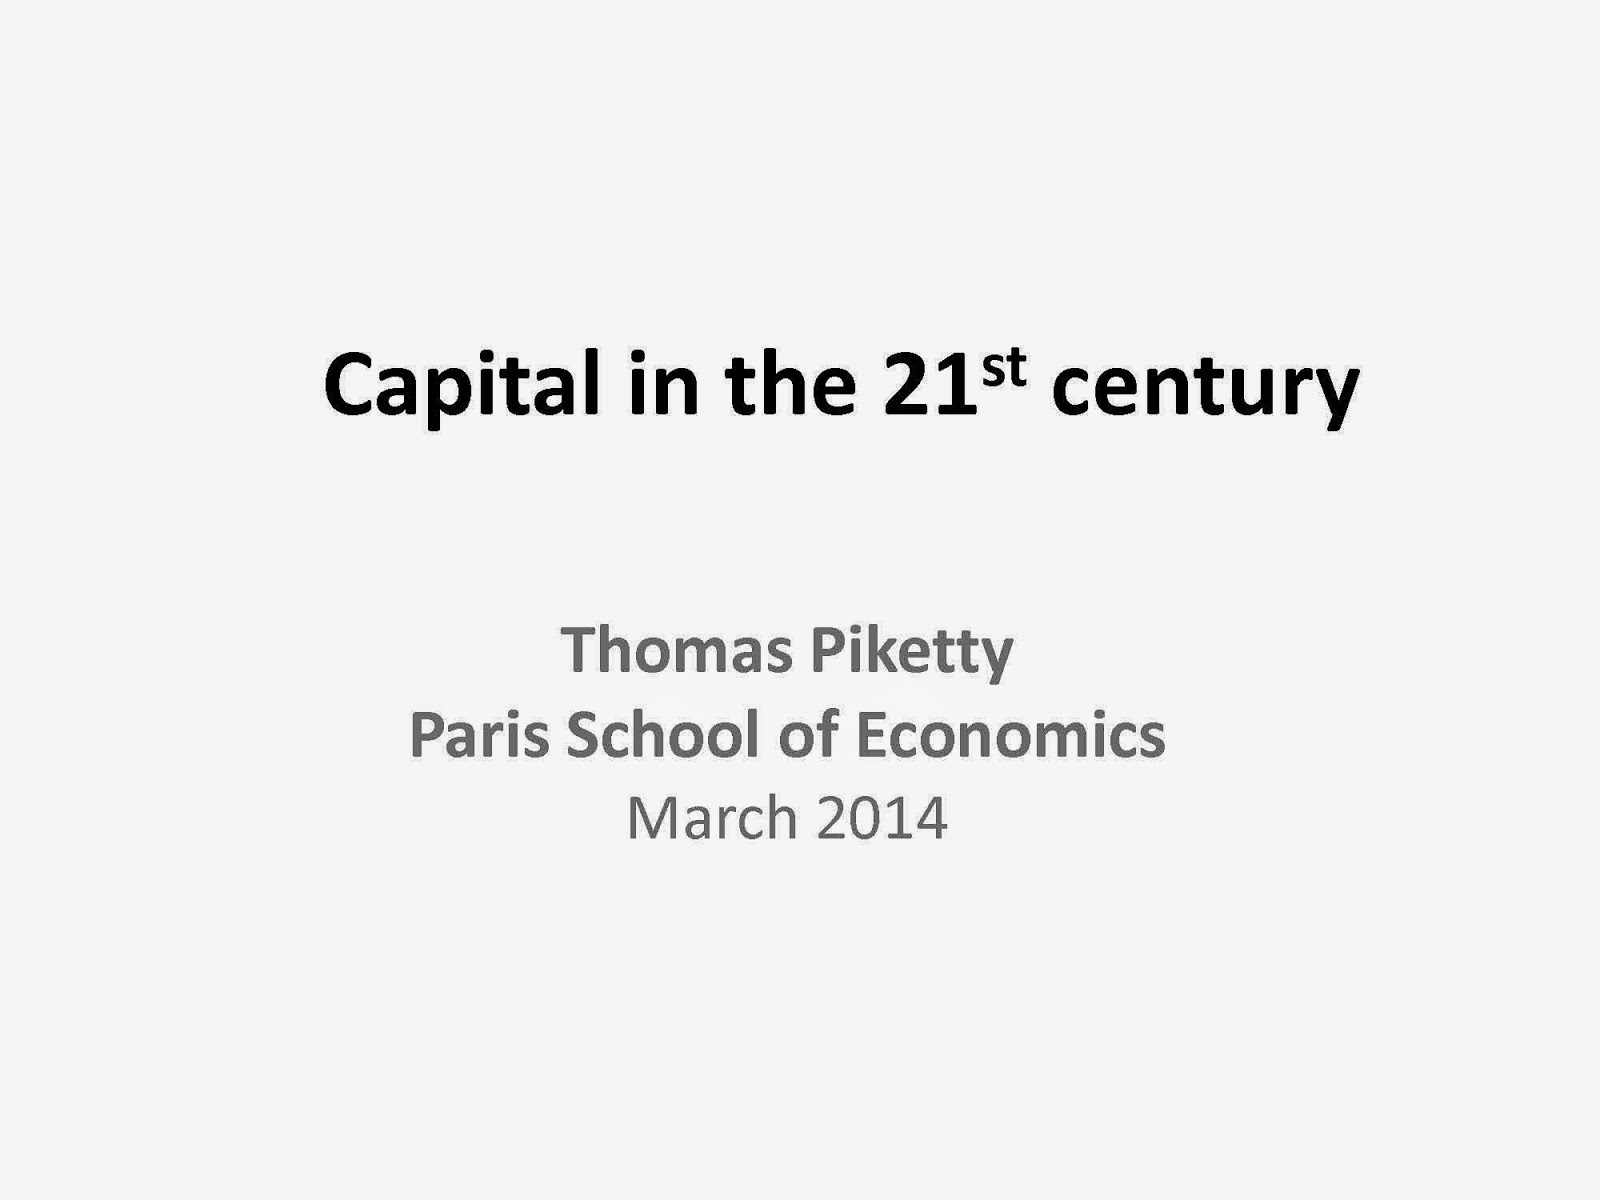 capital in the 21st century book ― thomas piketty, capital in the twenty-first century this is one of those scholarly books that seem to end up being accidental cultural markers of time and place i'm pretty sure piketty wanted his book to be read/discussed/debated, and belnap/harvard press certainly wanted it to be bought.